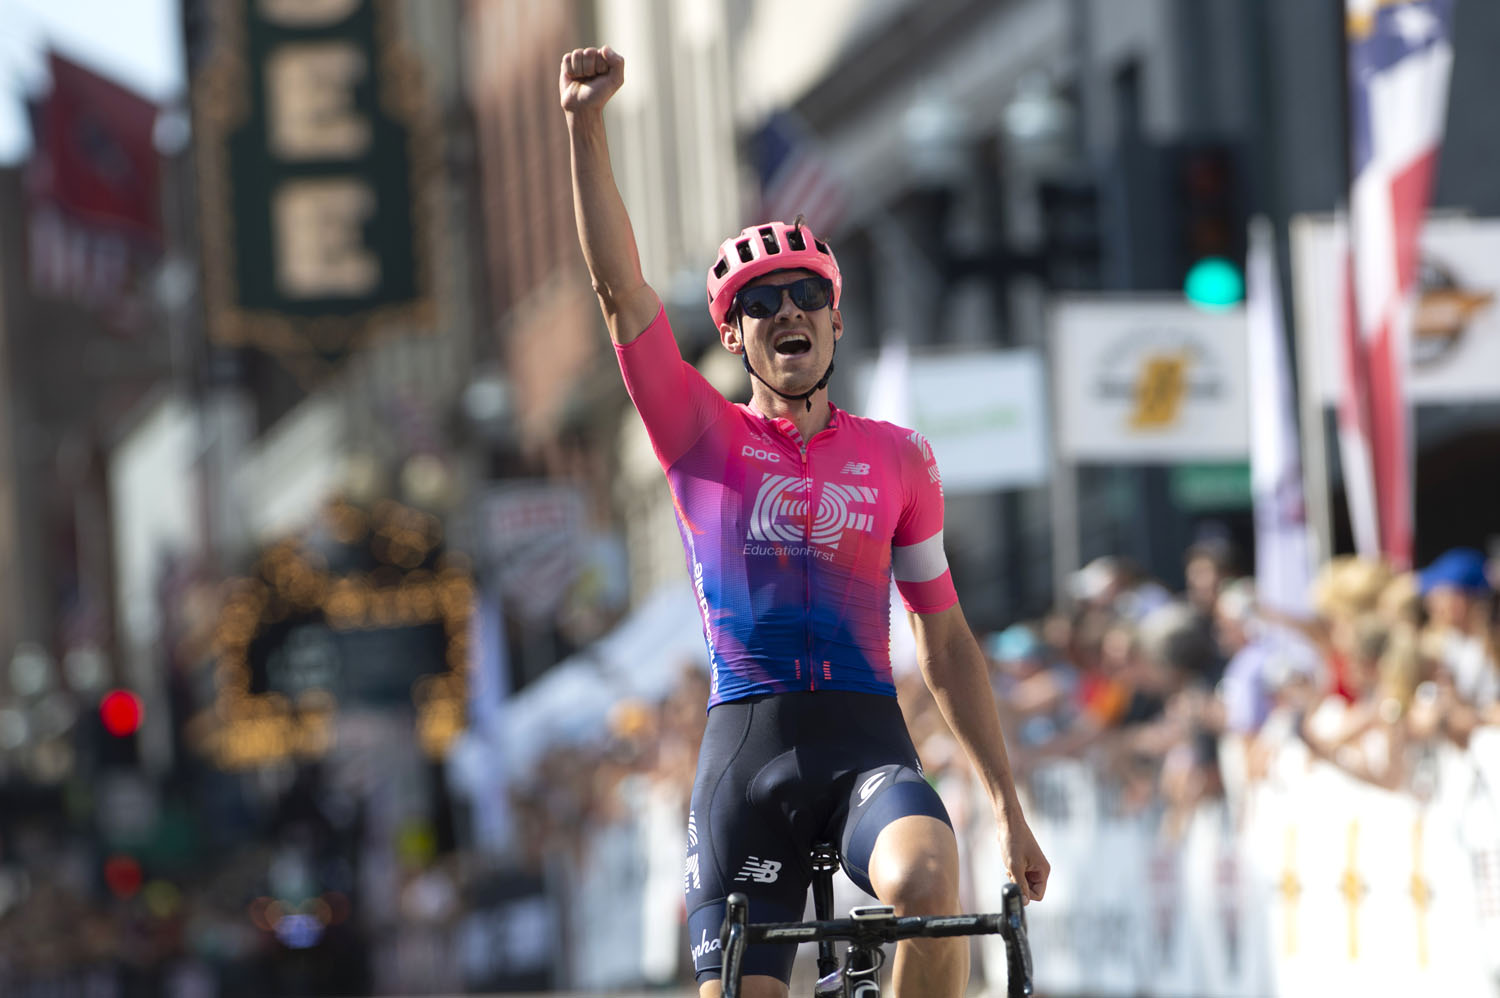 Alex Howes of Boulder, Colo. and EF Education First won the 2019 USA Pro Road National Championship on Sunday, June 20, 2019, in Knoxville, Tenn. (Photo courtesy USA Cycling)